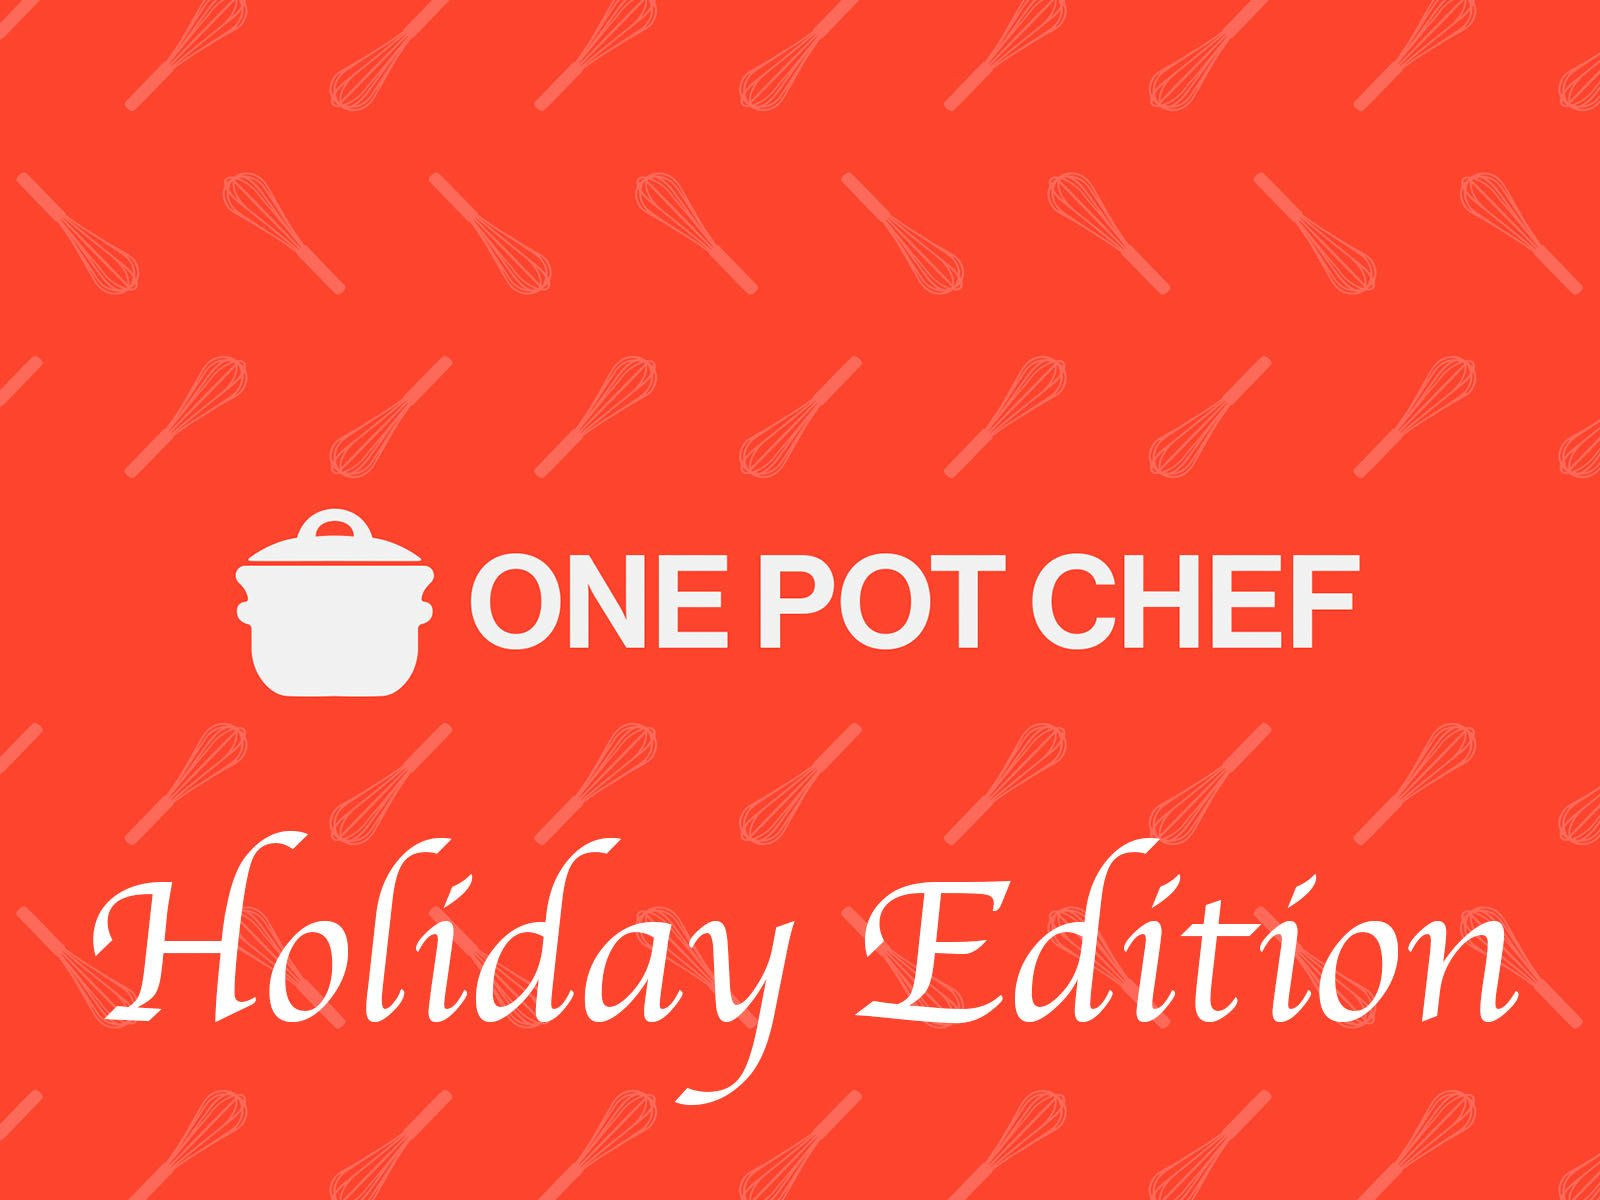 One Pot Chef Holiday Edition - Season 1